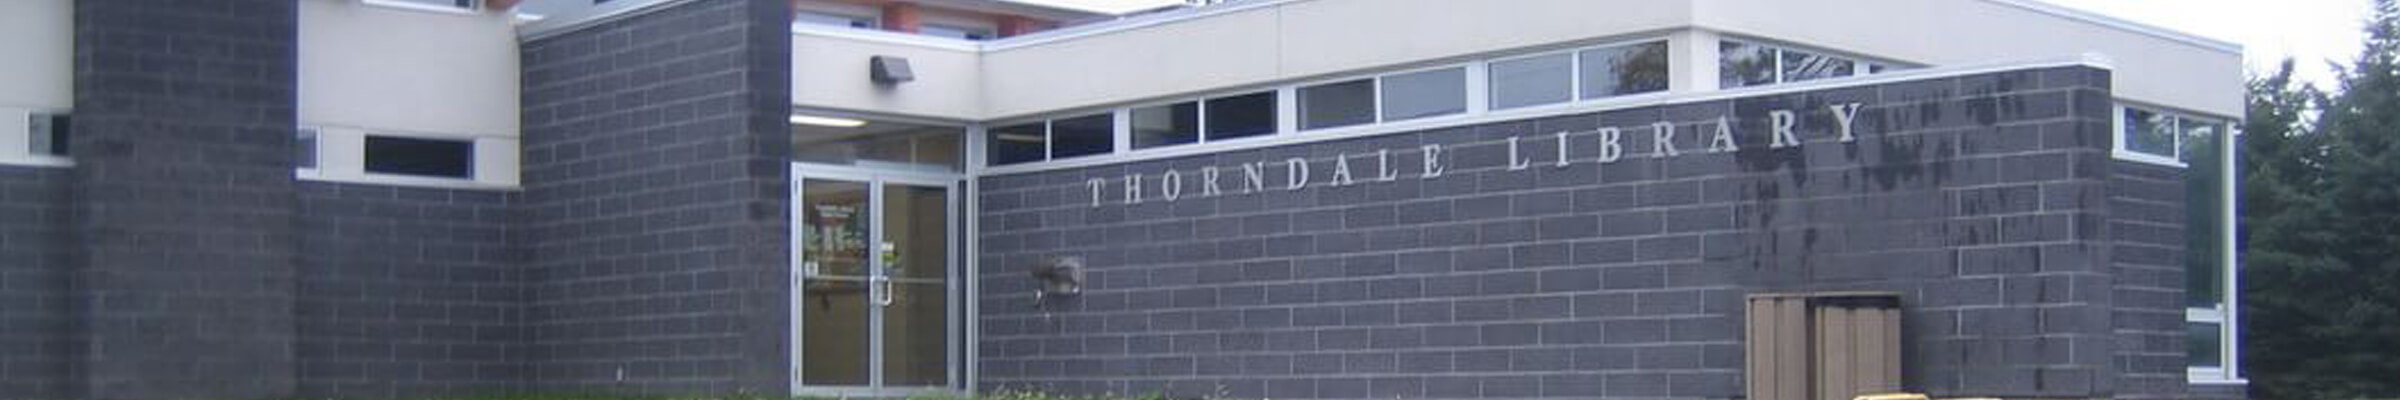 Thorndale Library